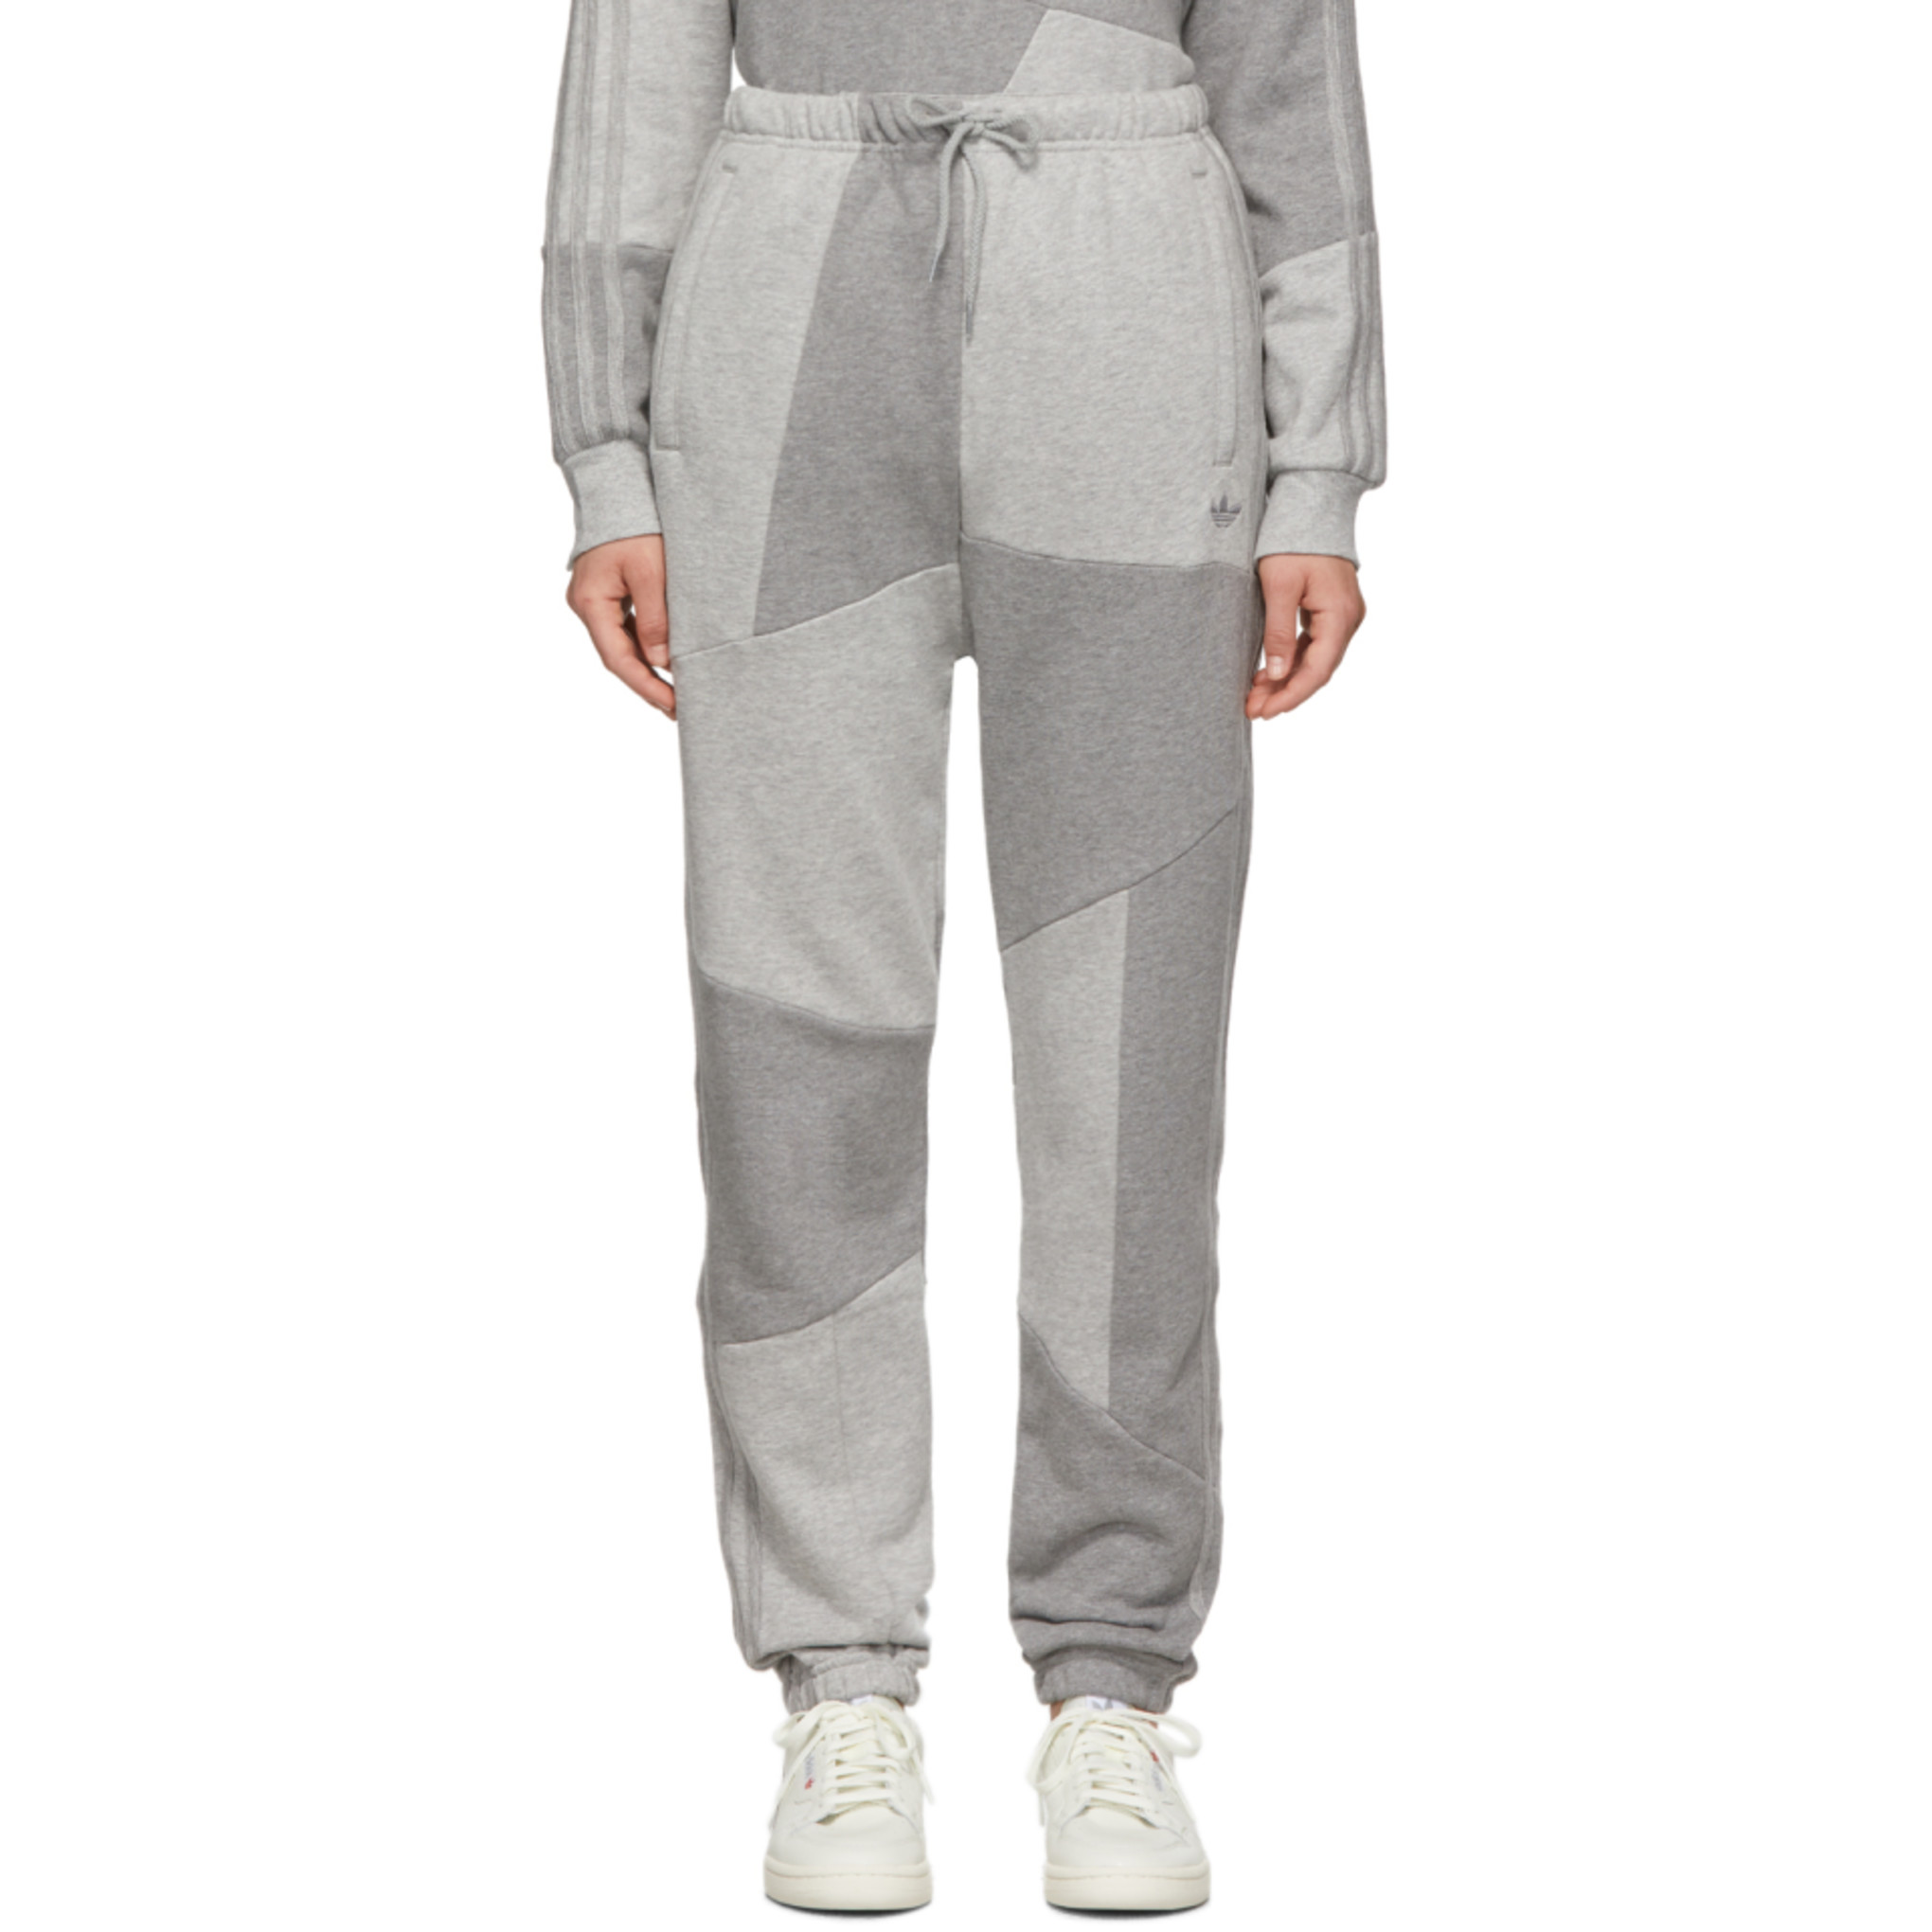 Grey Dc Lounge Pants by Adidas Originals By DaniËlle Cathari